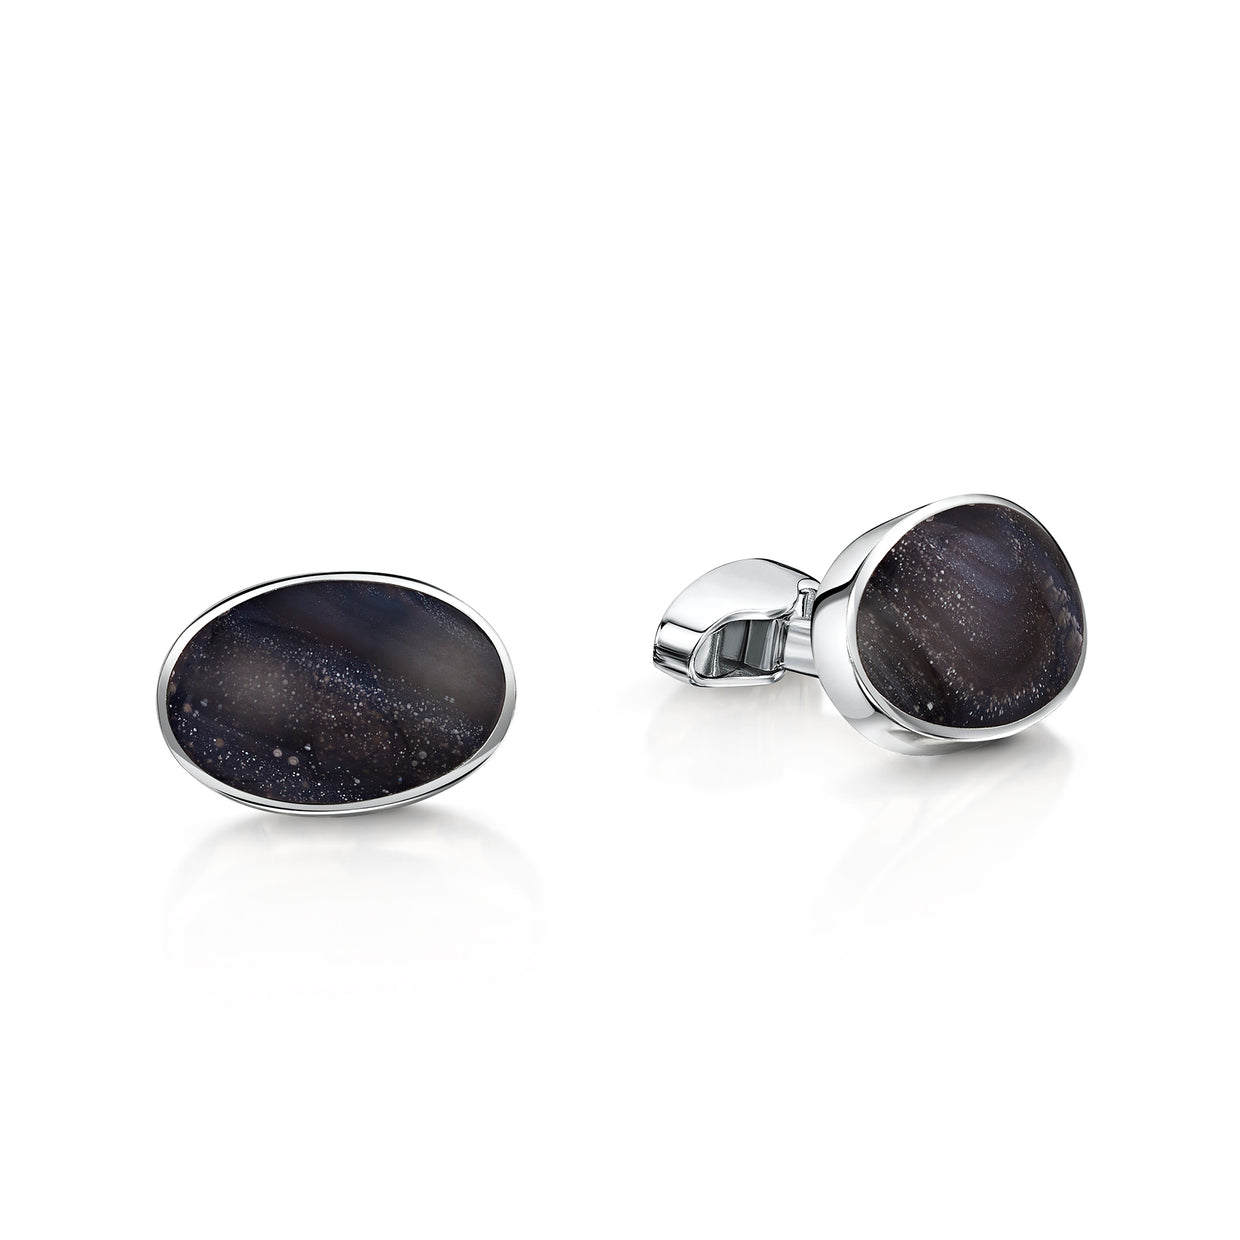 Montrose Agate Cufflinks in Sterling Silver - Hamilton & Inches